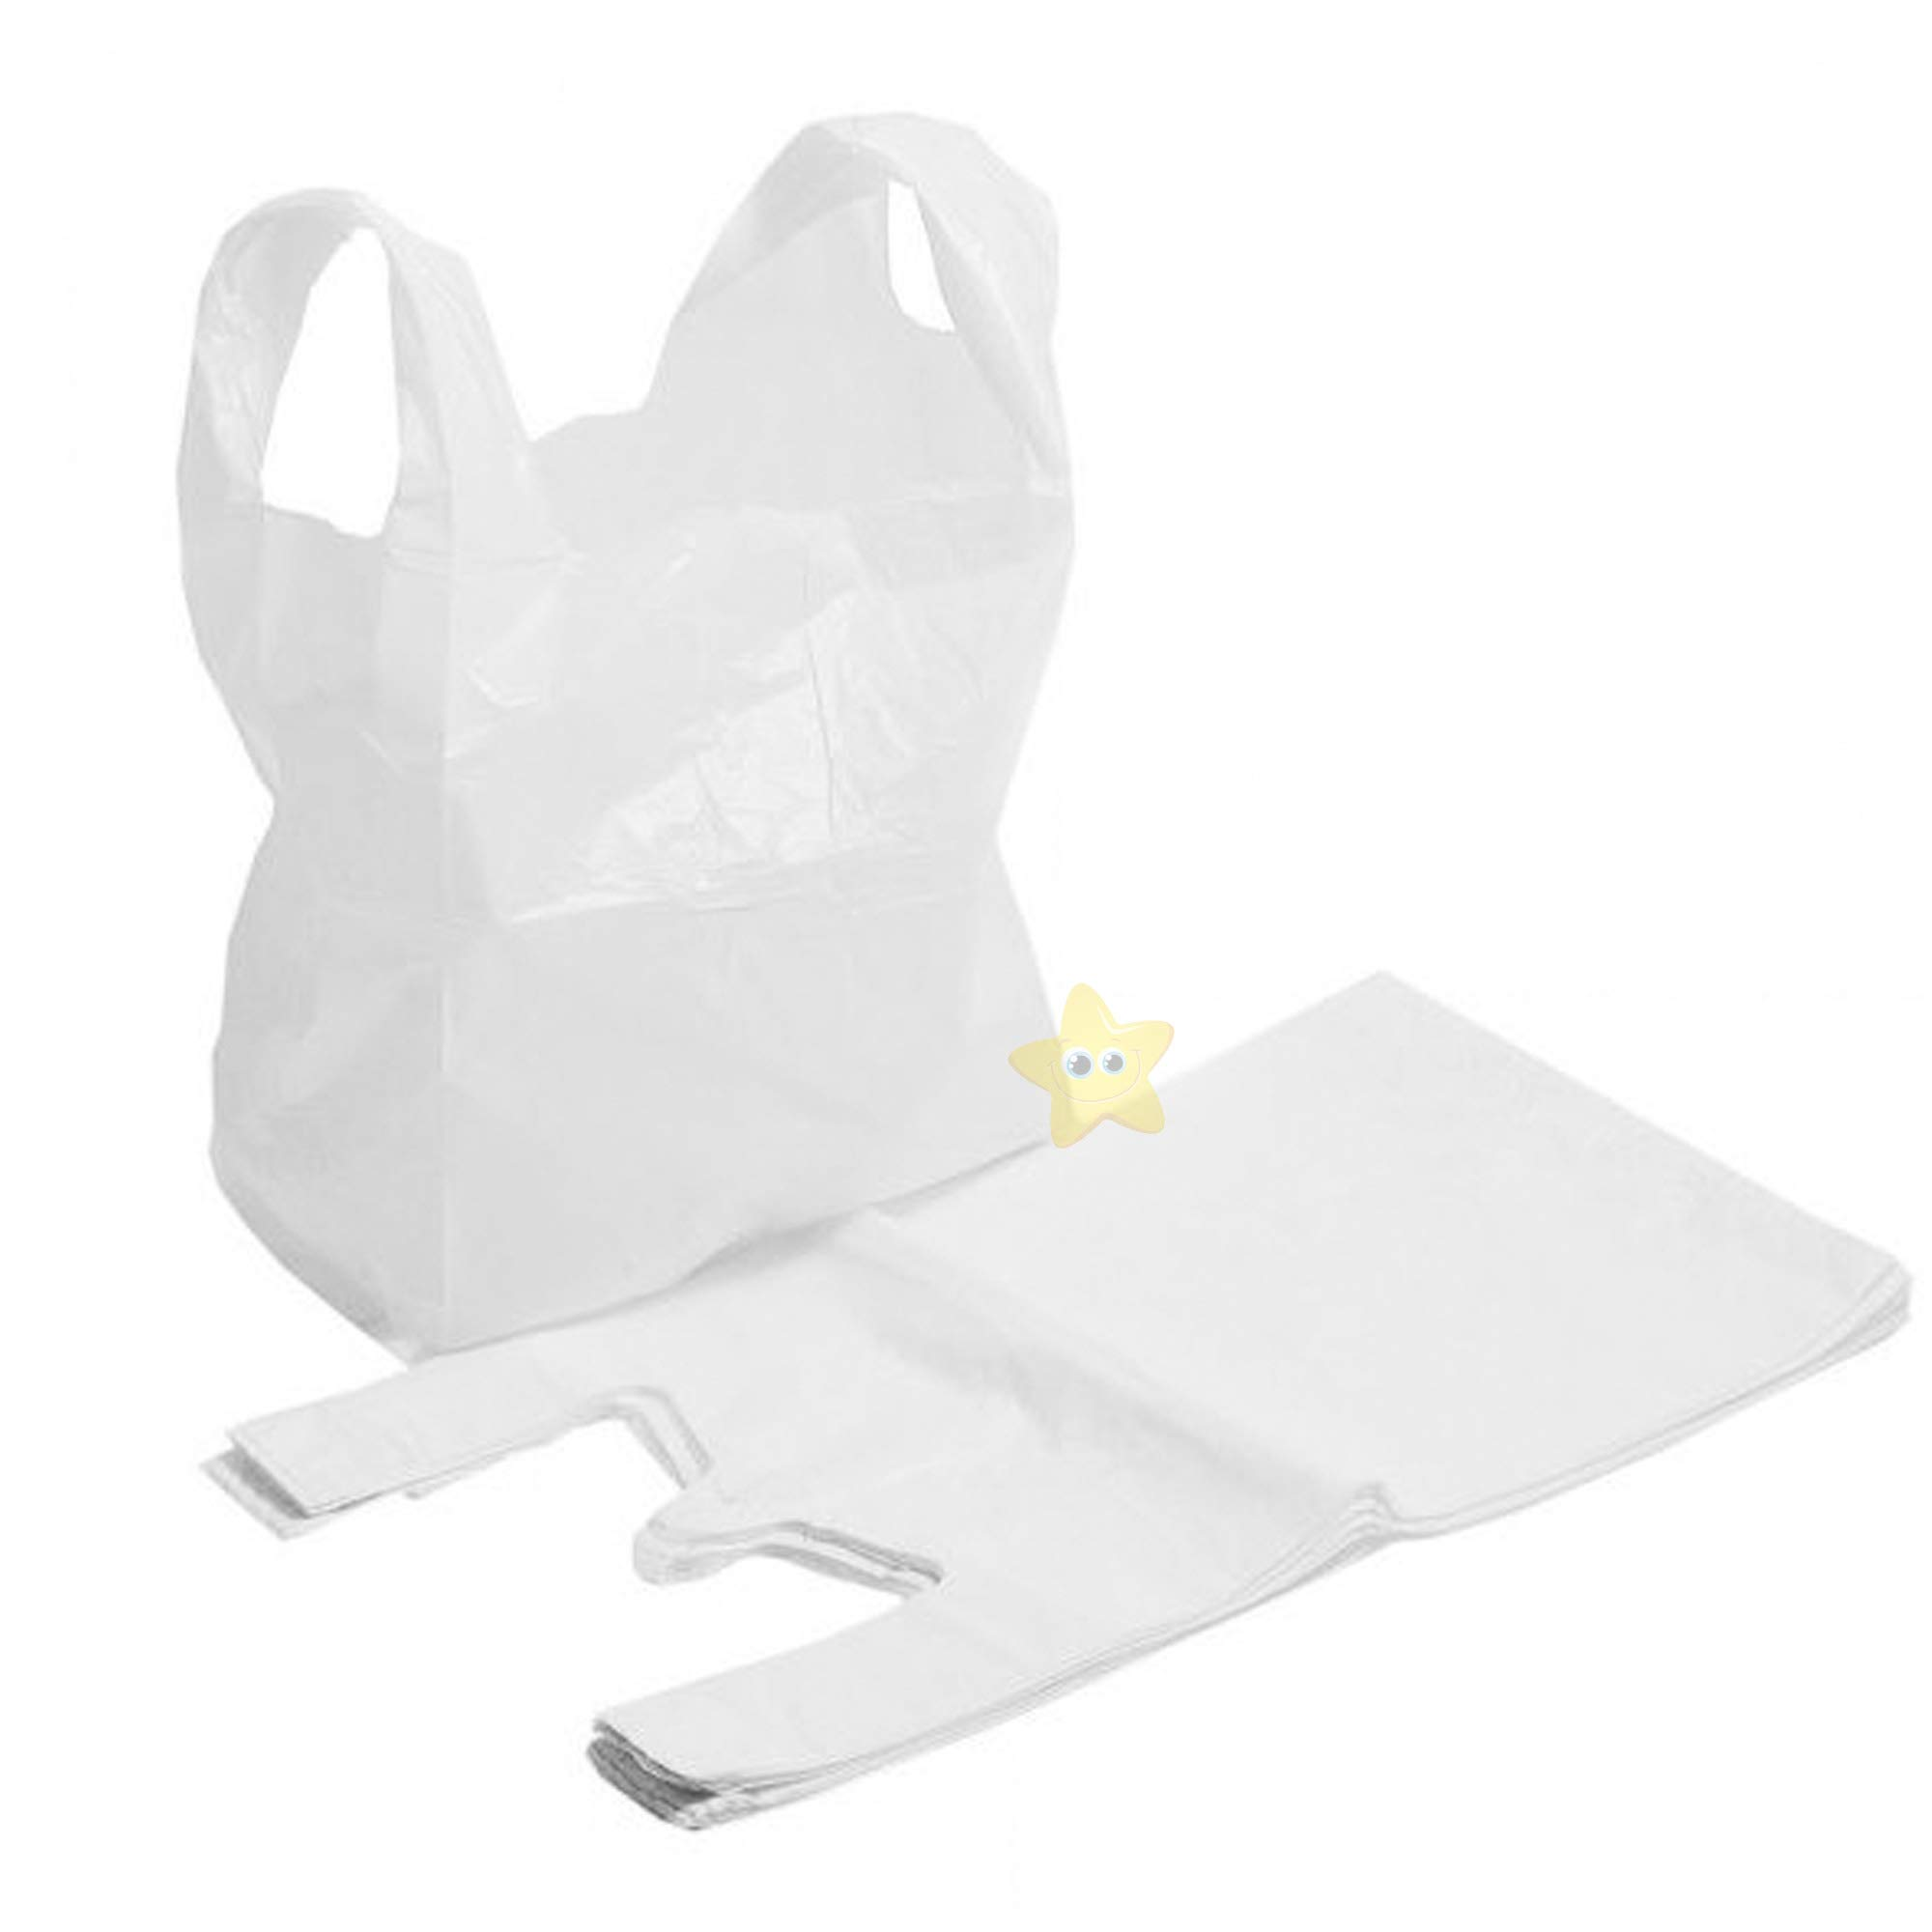 Eco Friendly 10 x 15 x 18 100/% Recyclable Sabco Sabco 100 x Strong White Vest Style Plastic Carrier Bags